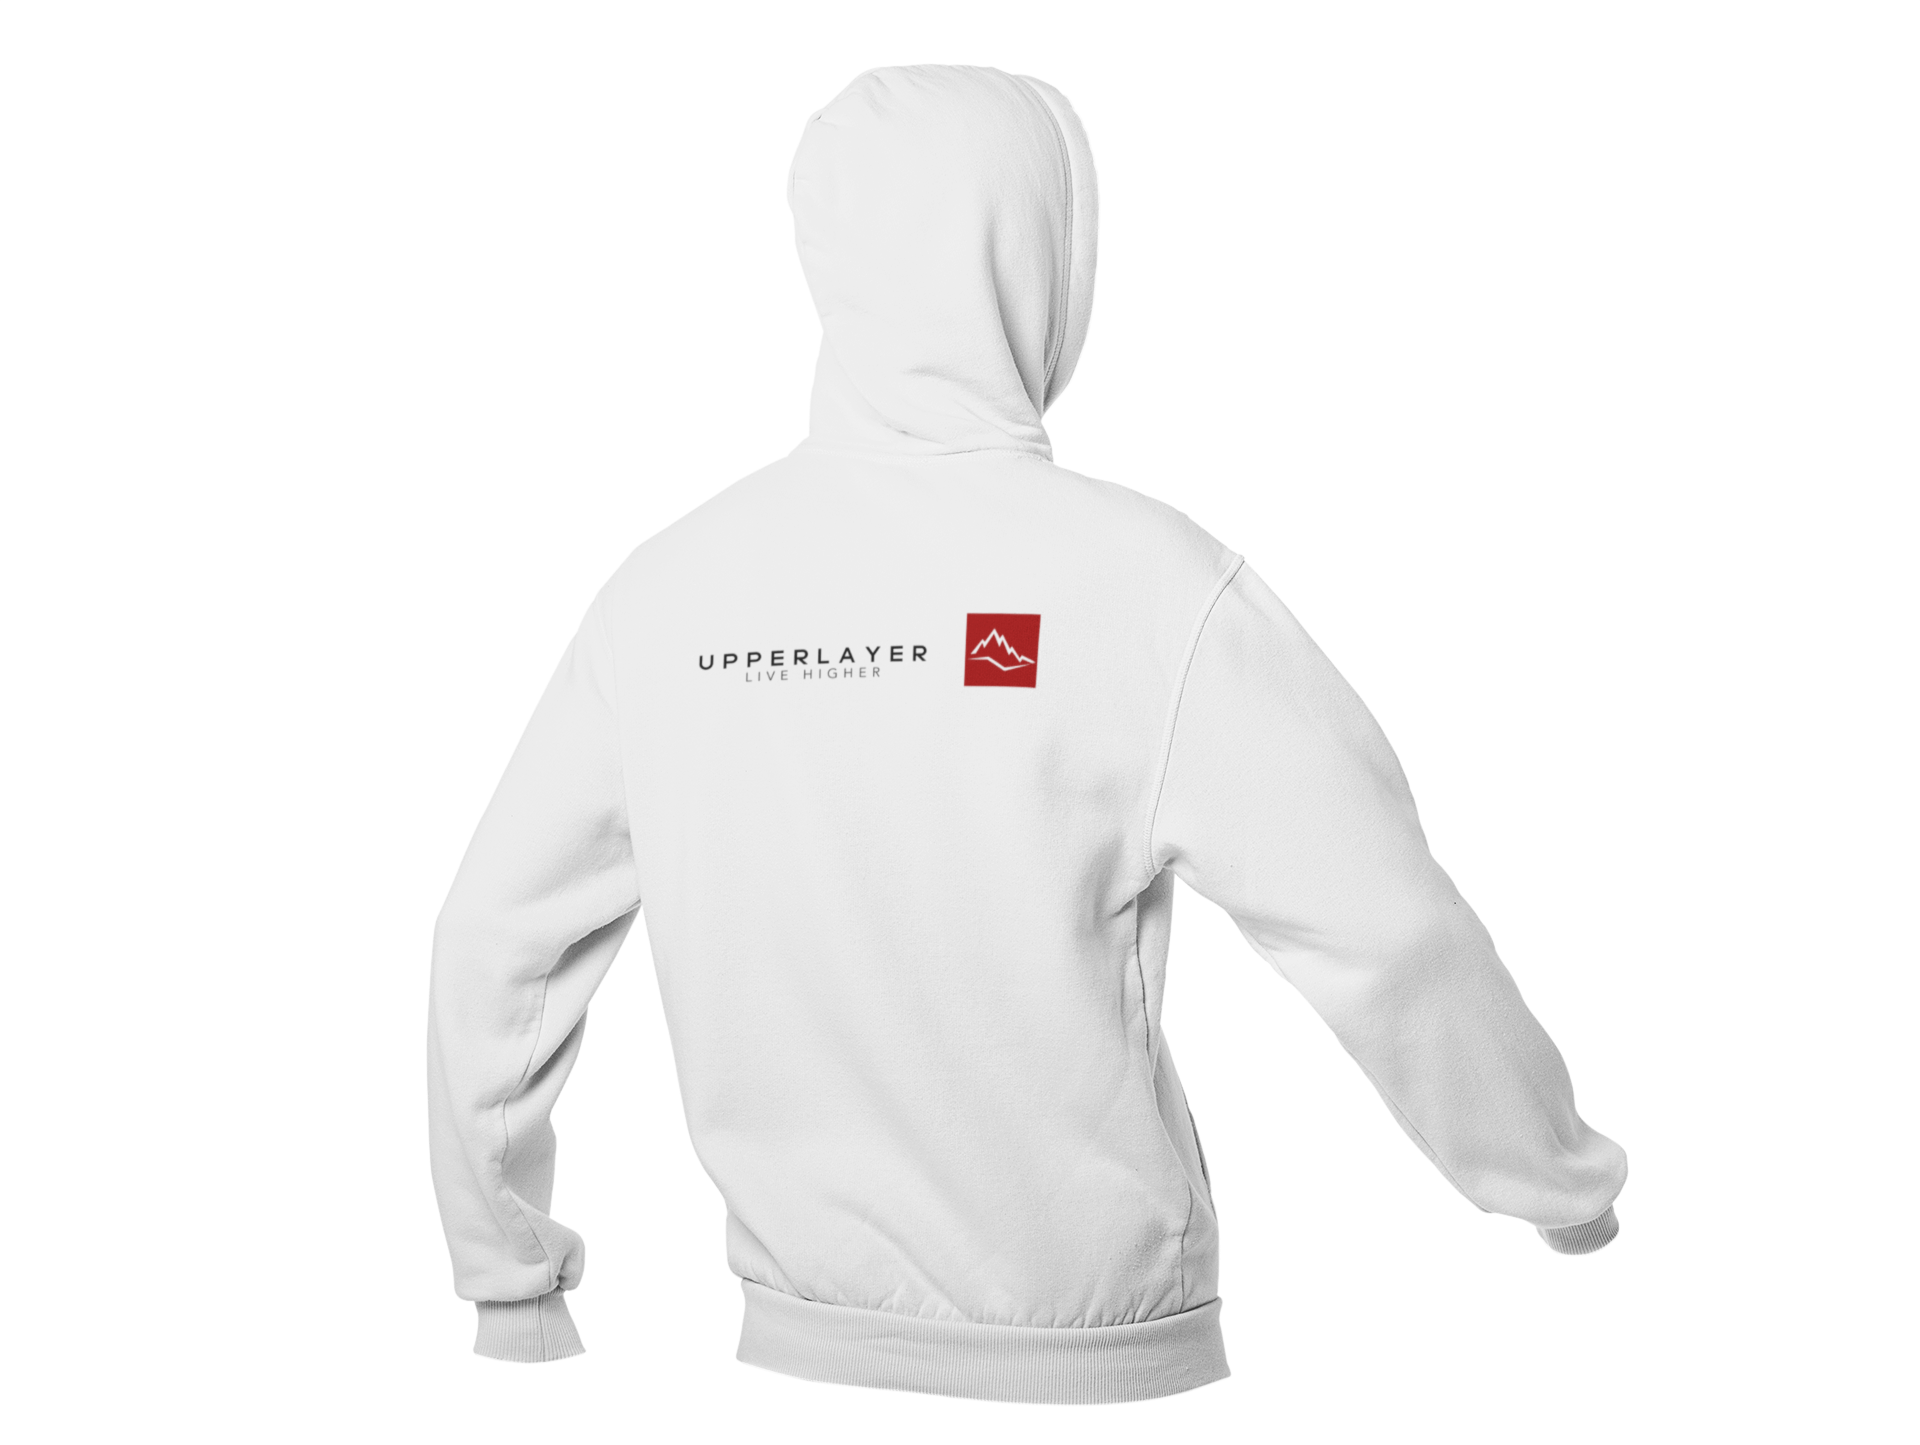 Upperlayer Arctic White Zip up hoodie with red square logo